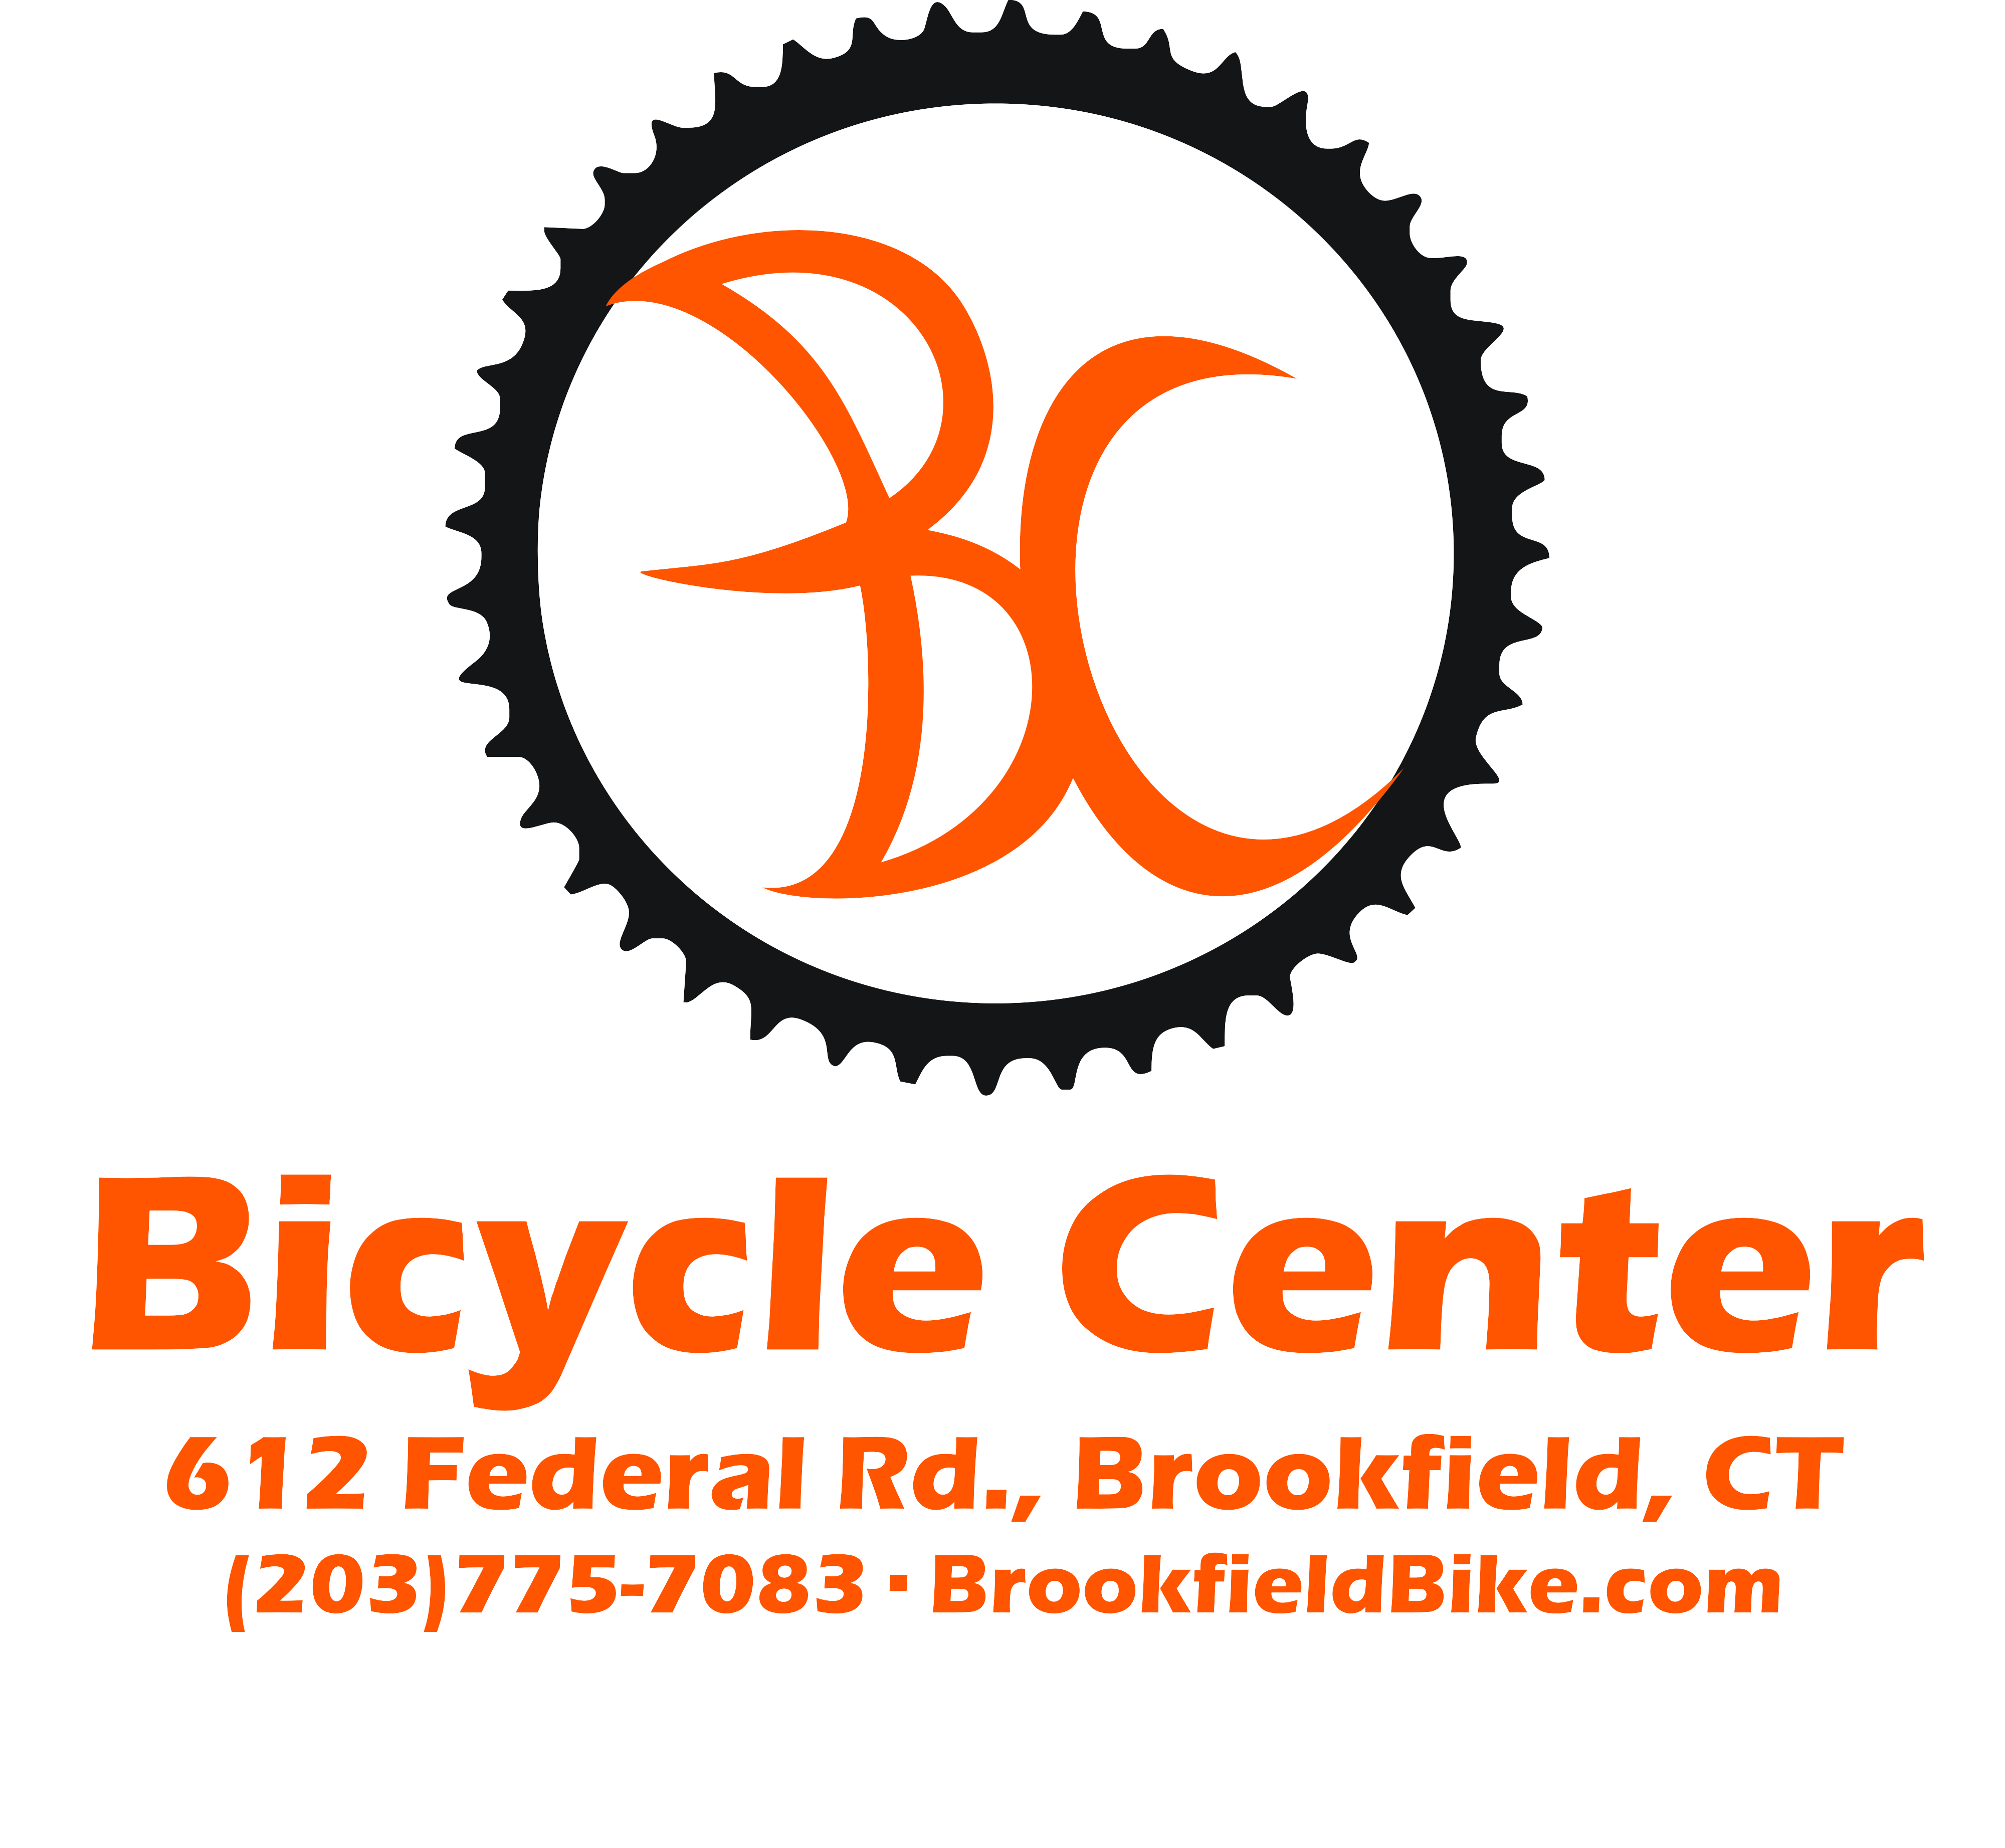 Bike Express Danbury Ct THE BICYCLE CENTER